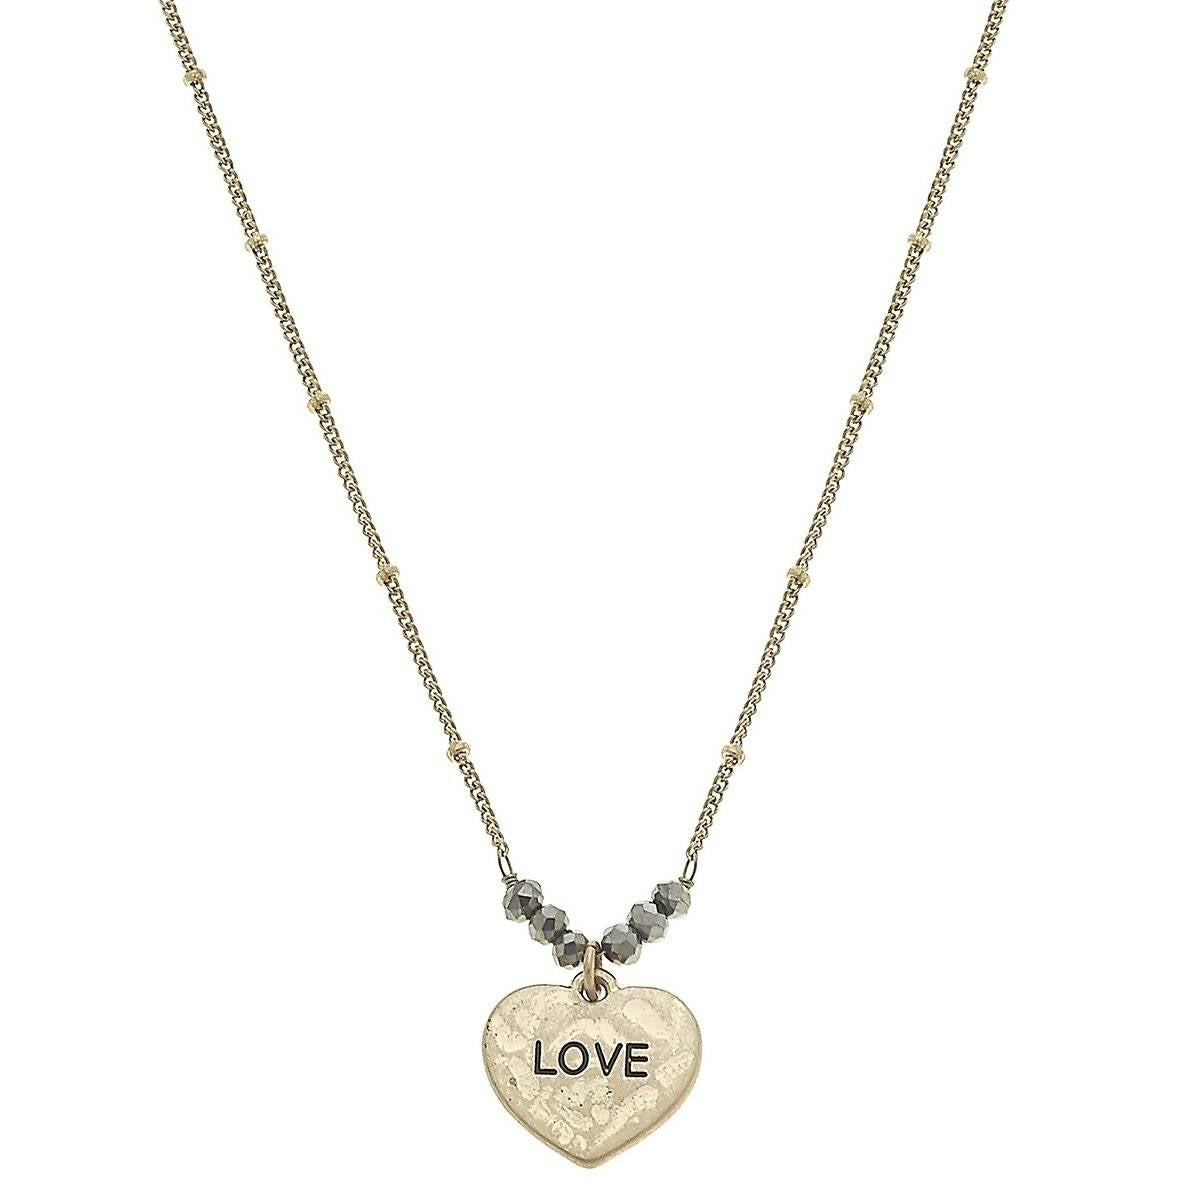 Love Heart Necklace in Worn Gold